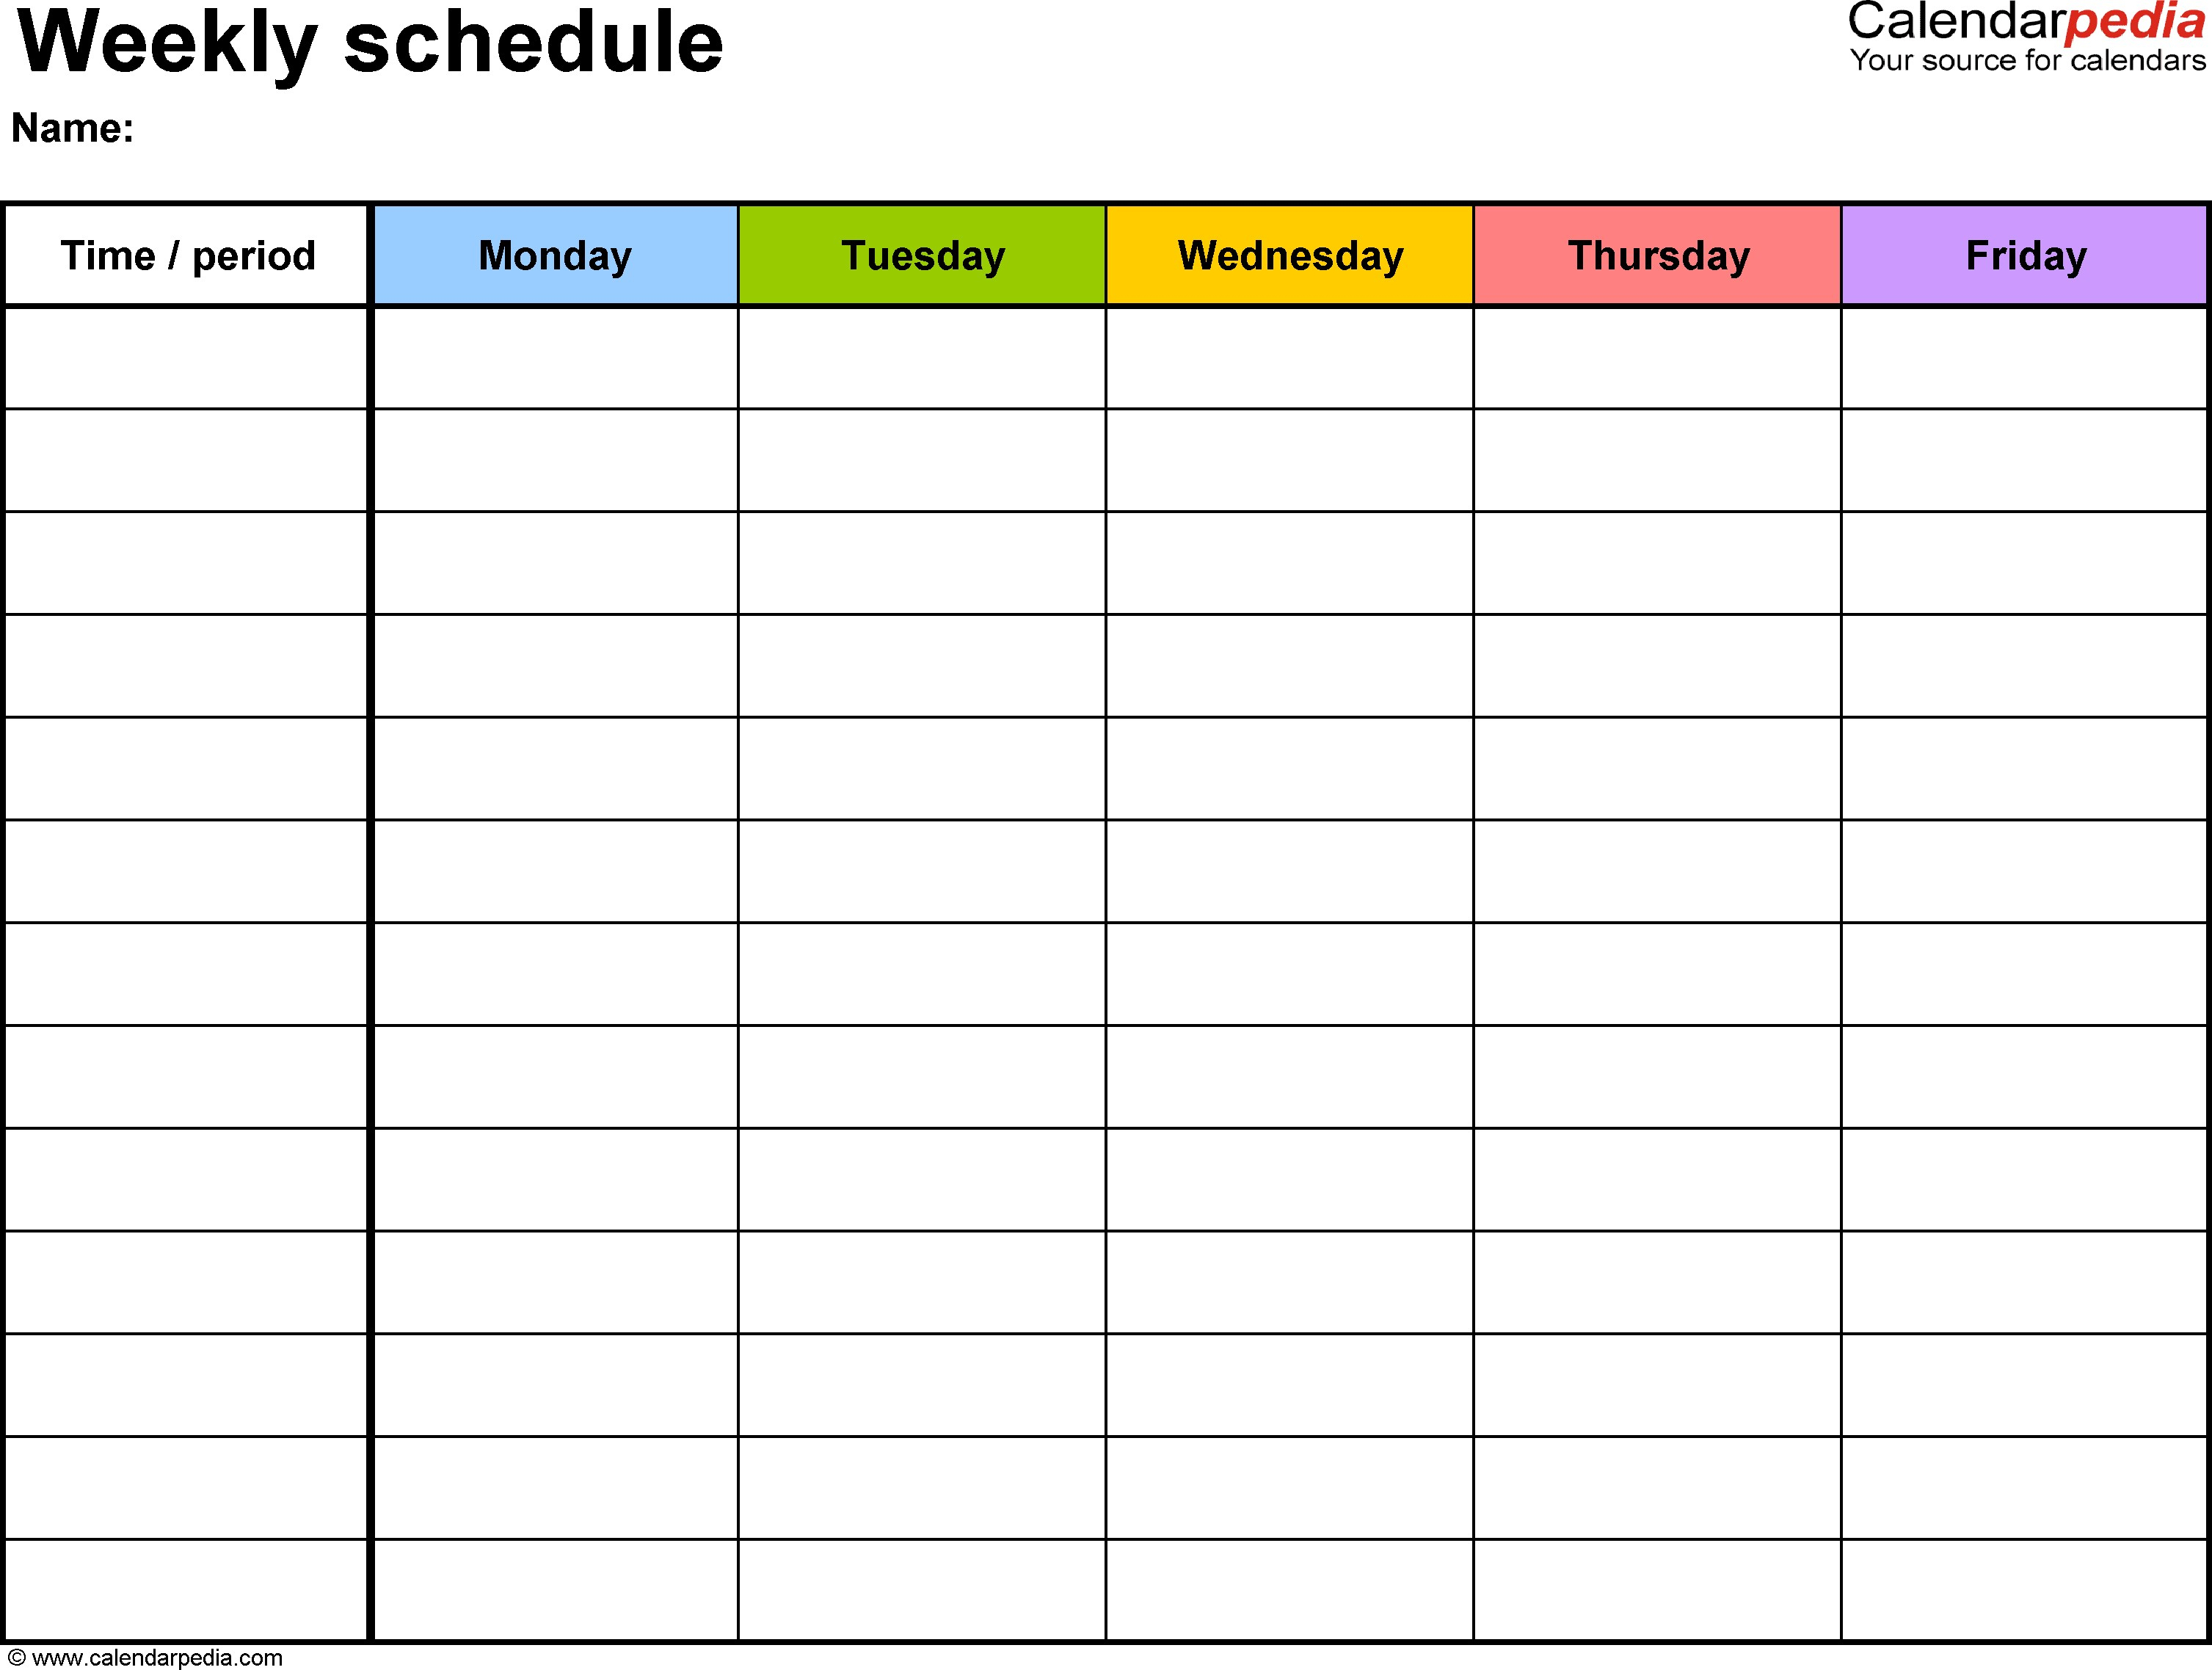 Weekly Calendar With Time Slots  Bolan.horizonconsulting.co inside Printable Weekly Calendar With Time Slots